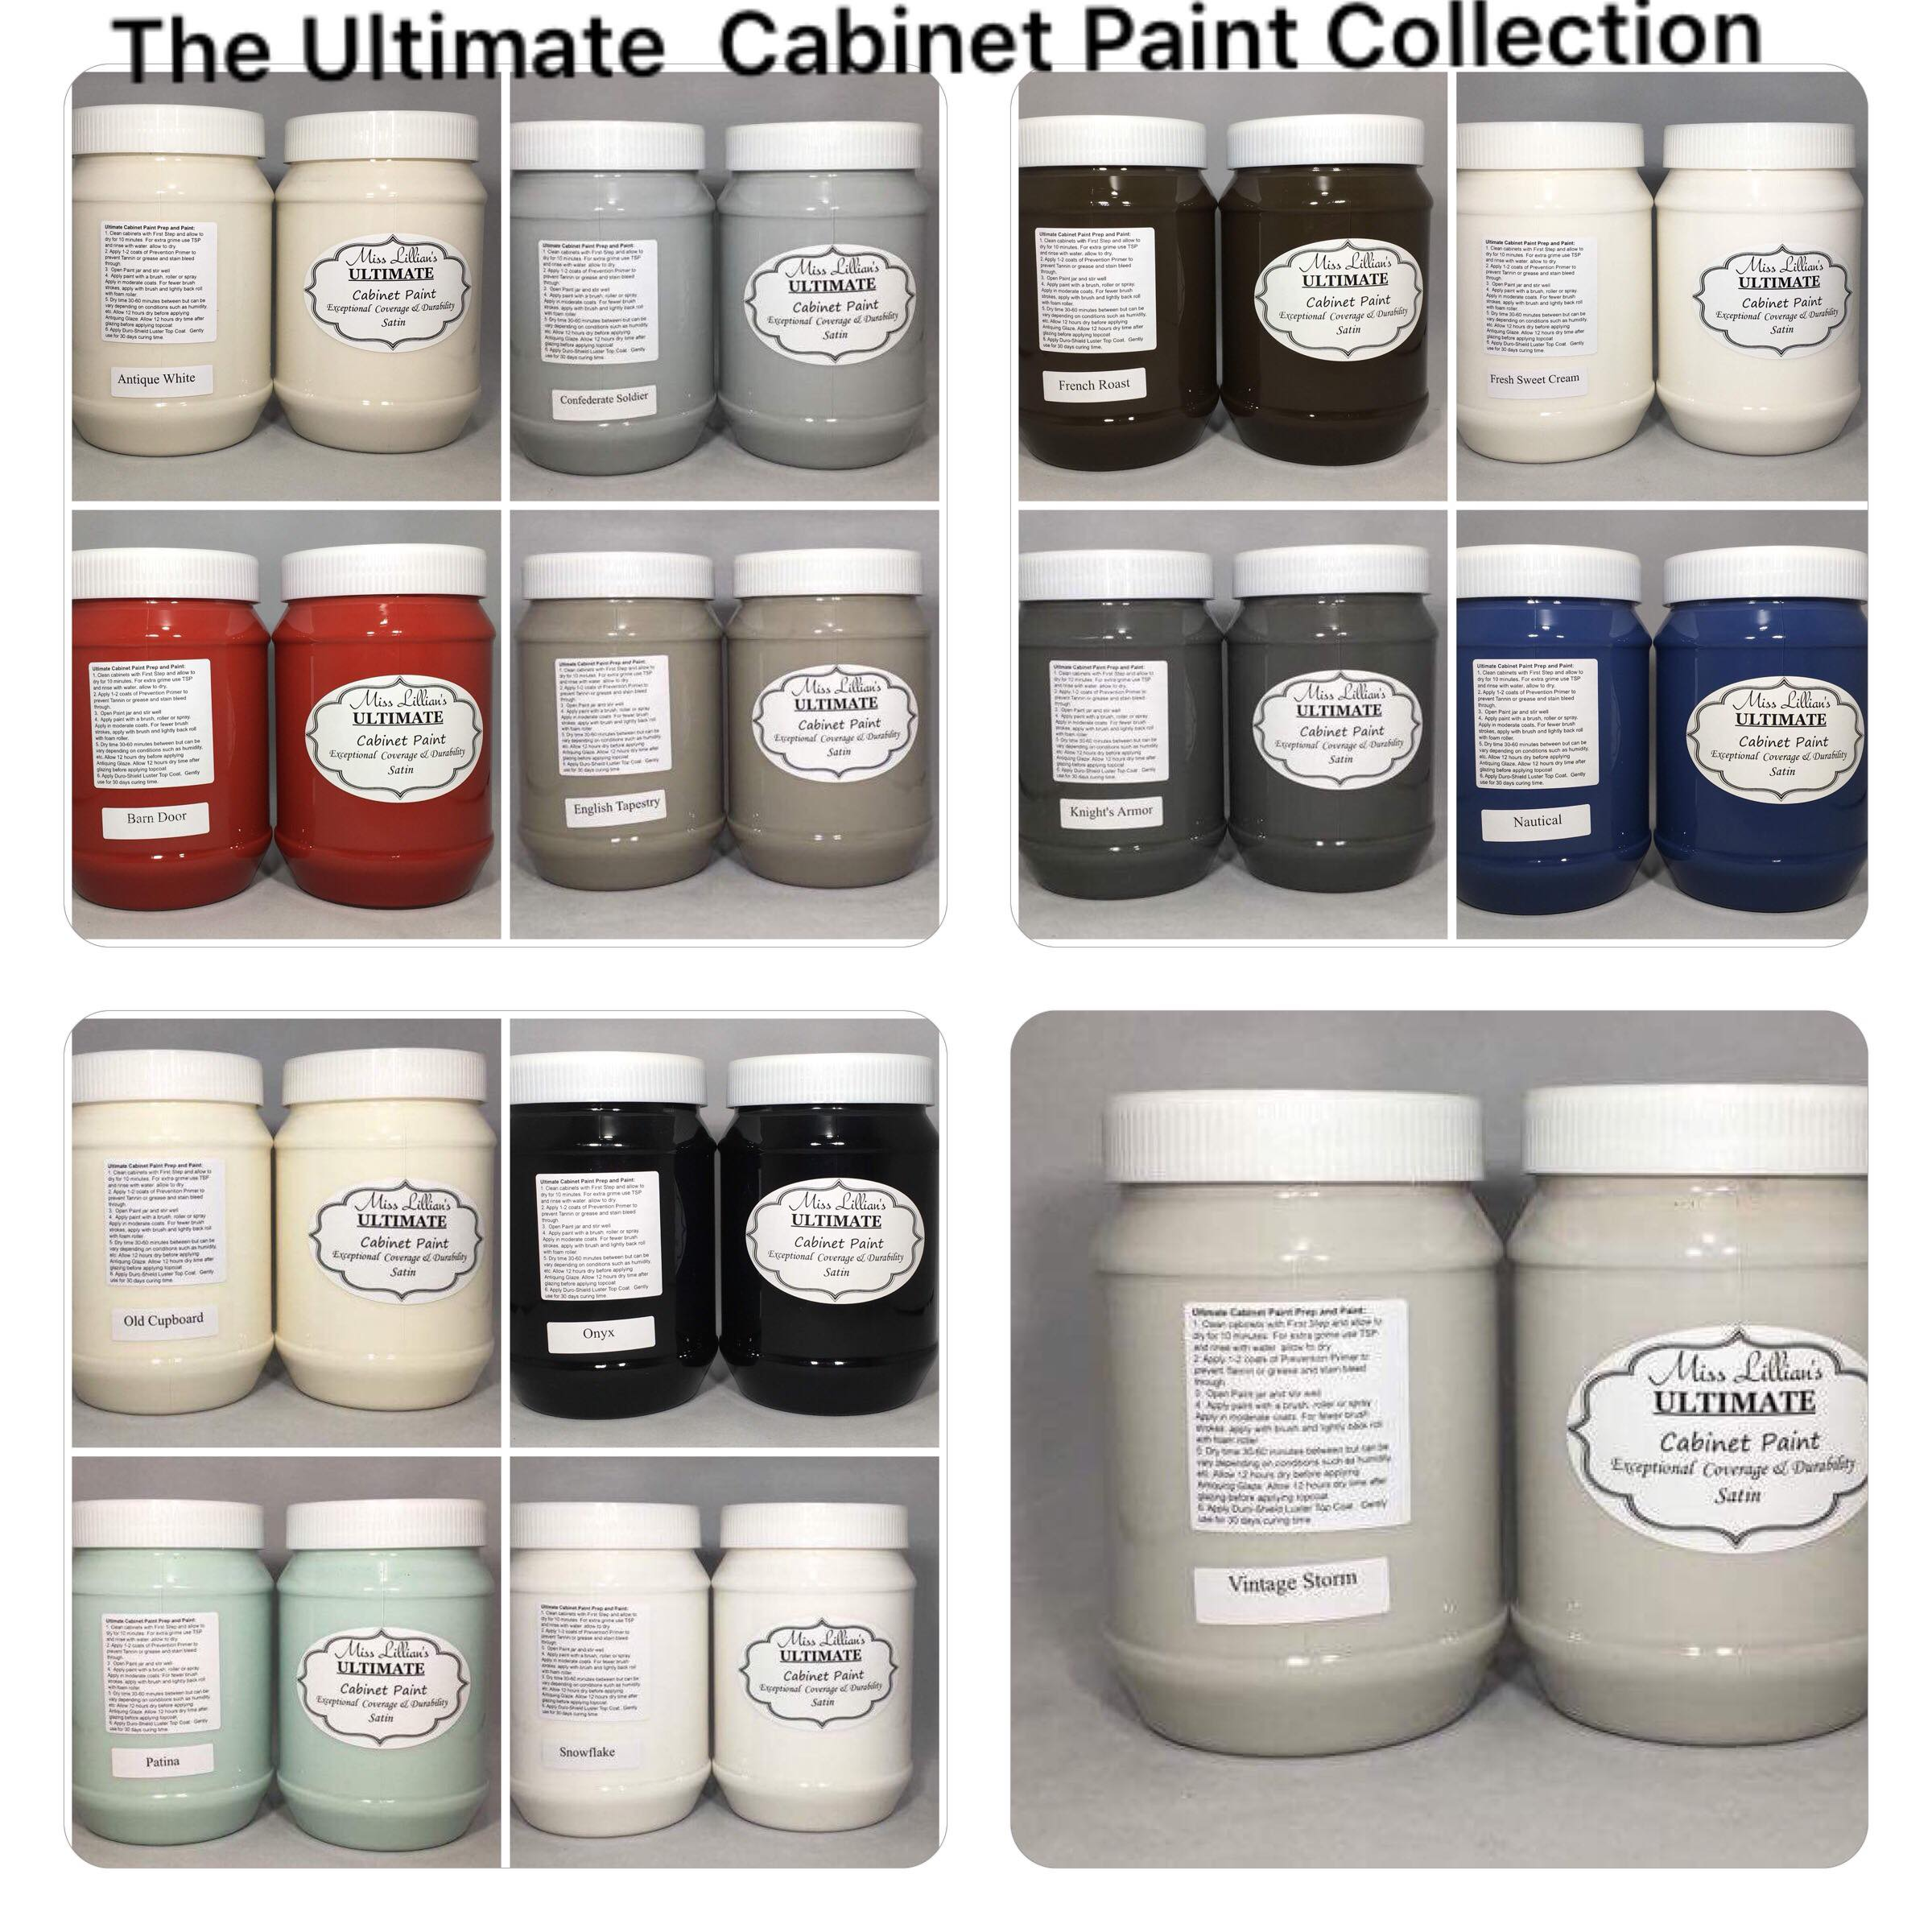 Ultimate Cabinet Paint Collage